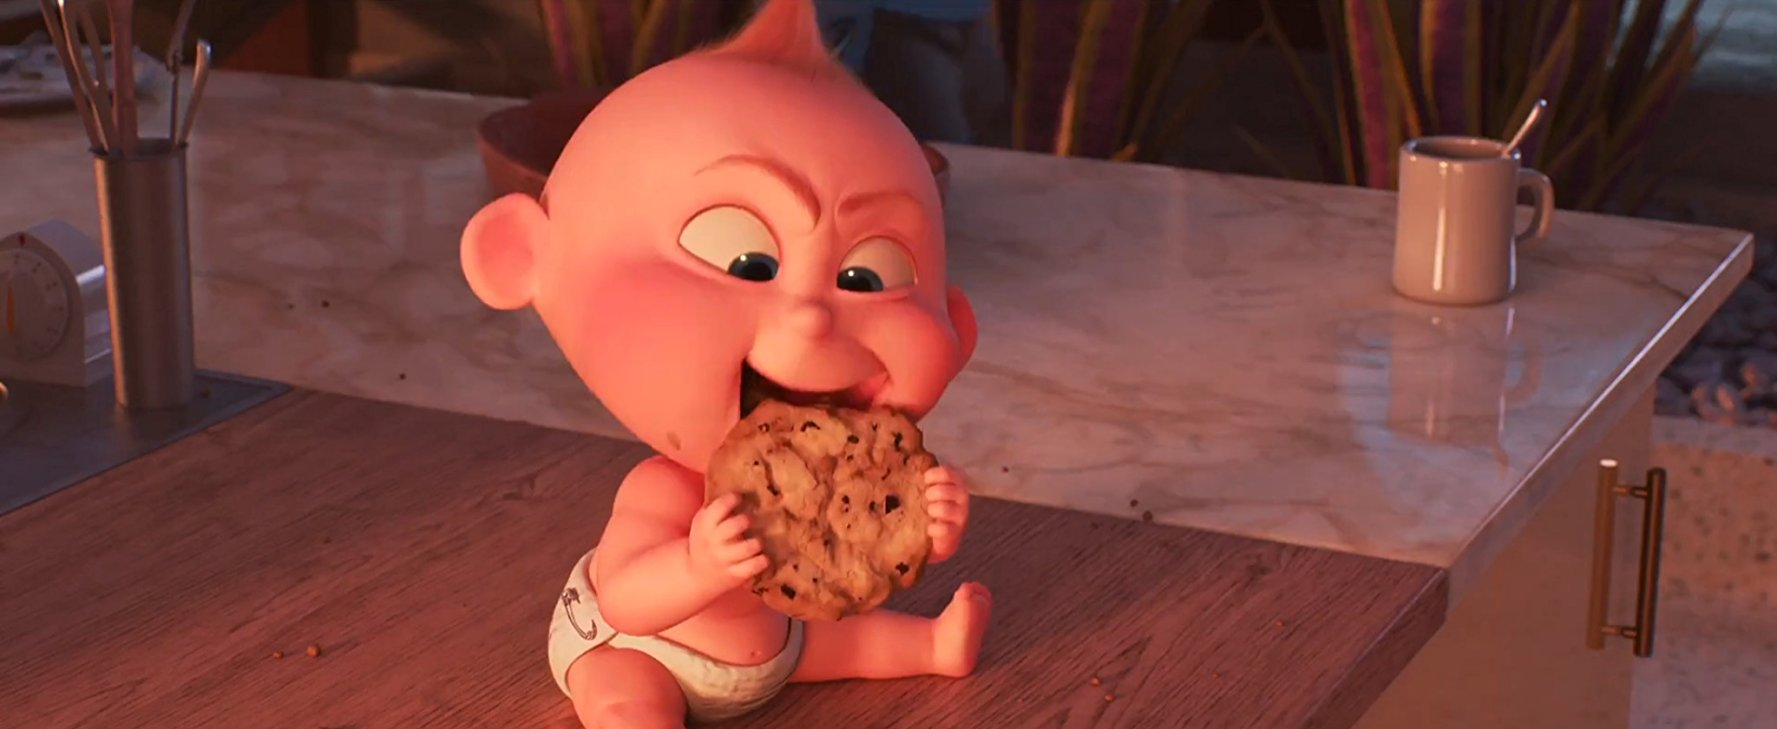 10 things to know about 'Incredibles 2'